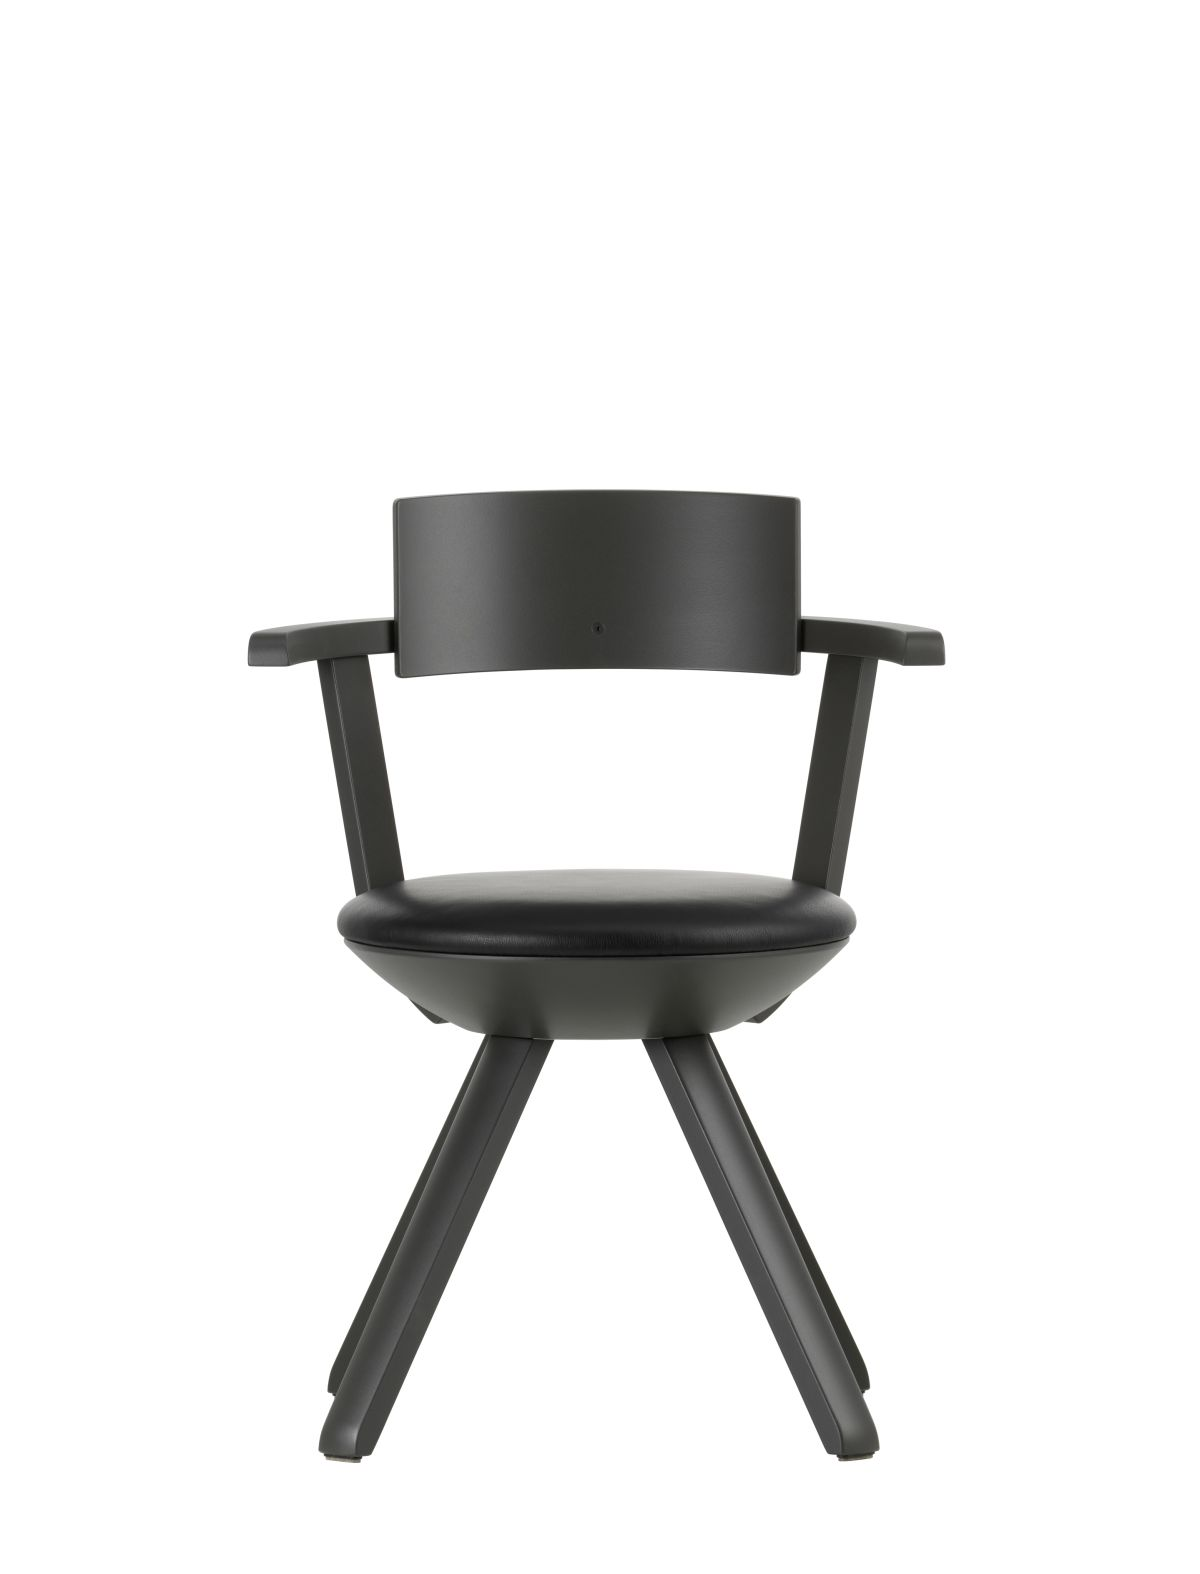 Rival Chair KG002 Legs and backrest asphalt lacquered seat upholstery leather Premium nero